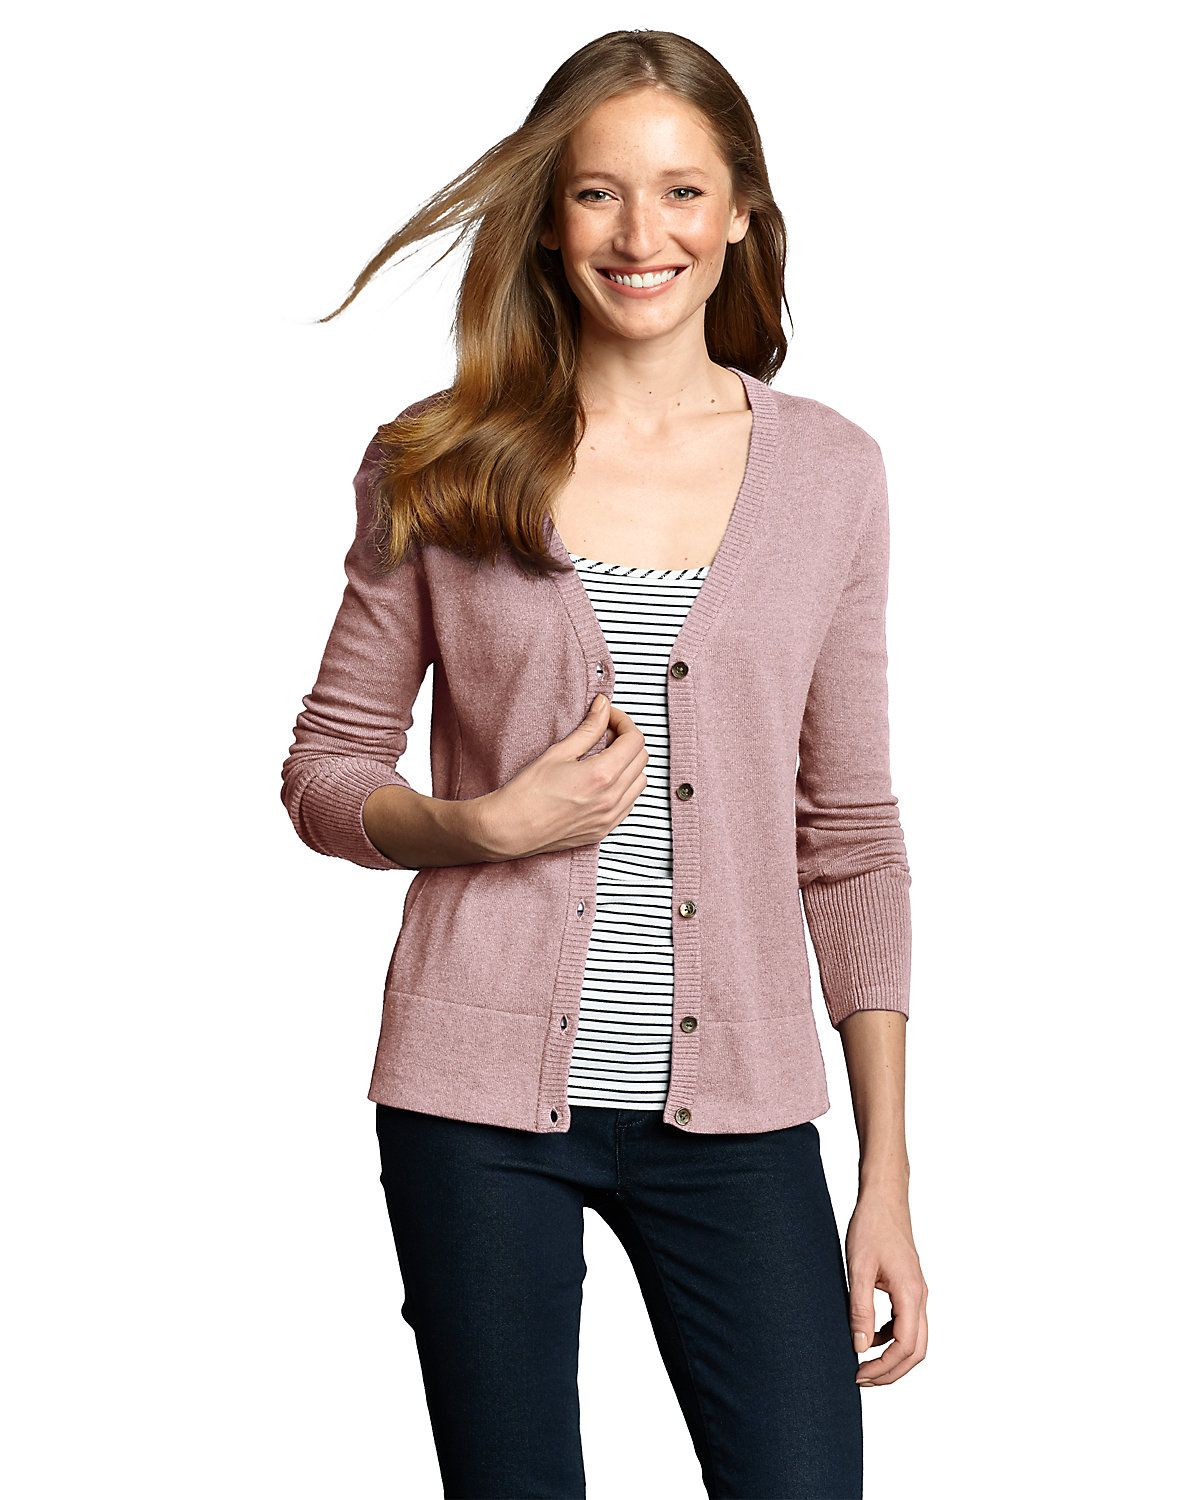 Women's Christine V-neck Cardigan Sweater - Solid | Eddie Bauer ...